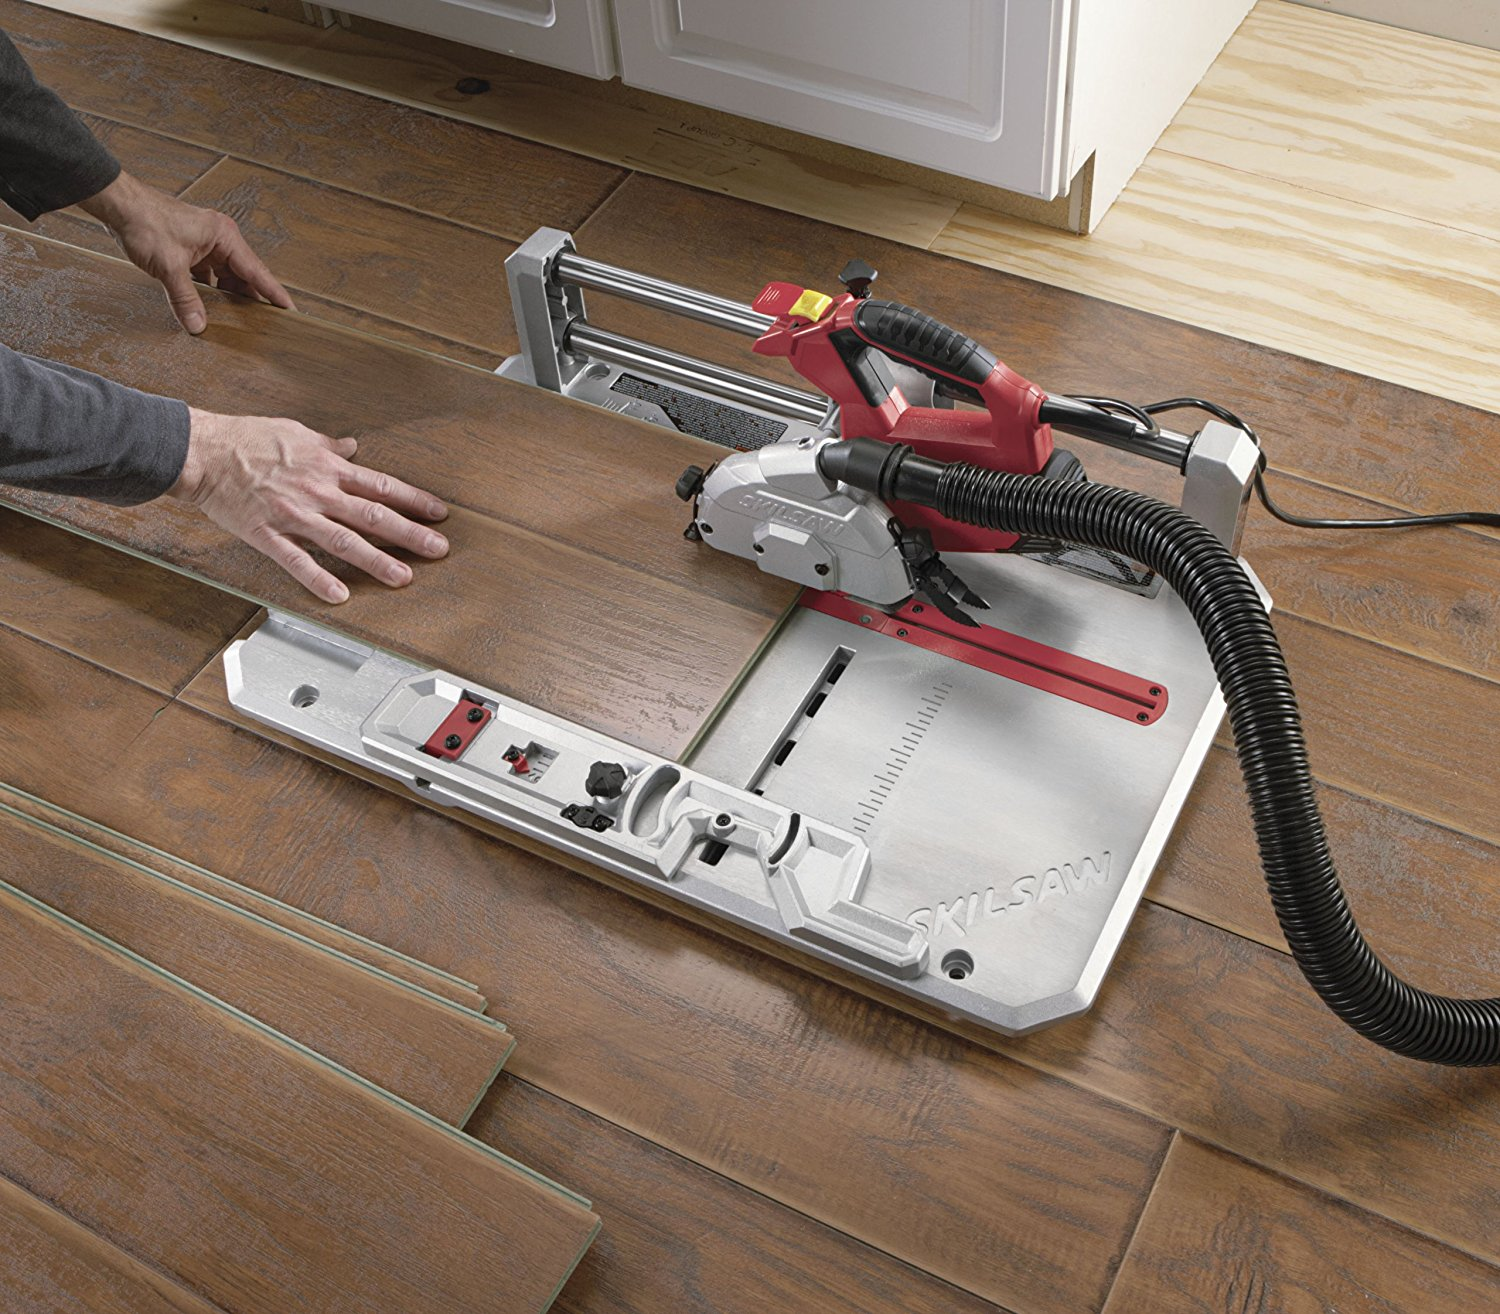 7 Best Laminate Floor Cutters That Cut Laminates Quickly And Easily